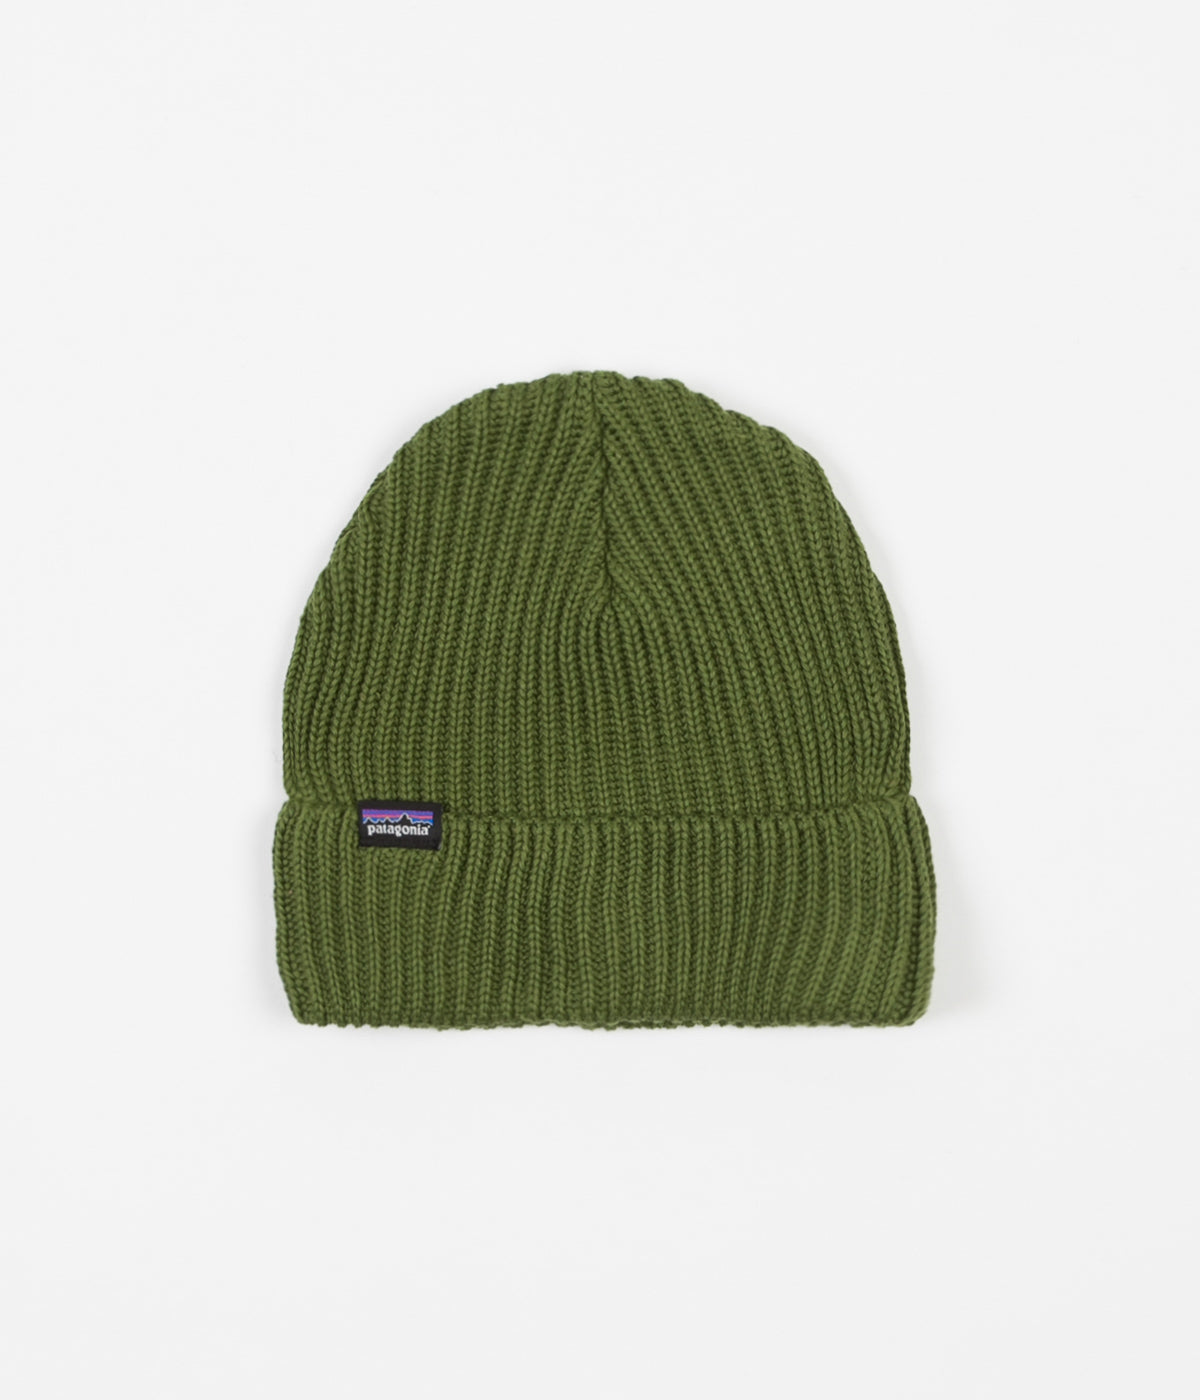 65cc44f8bf5 Patagonia Fisherman s Rolled Beanie - Glades Green